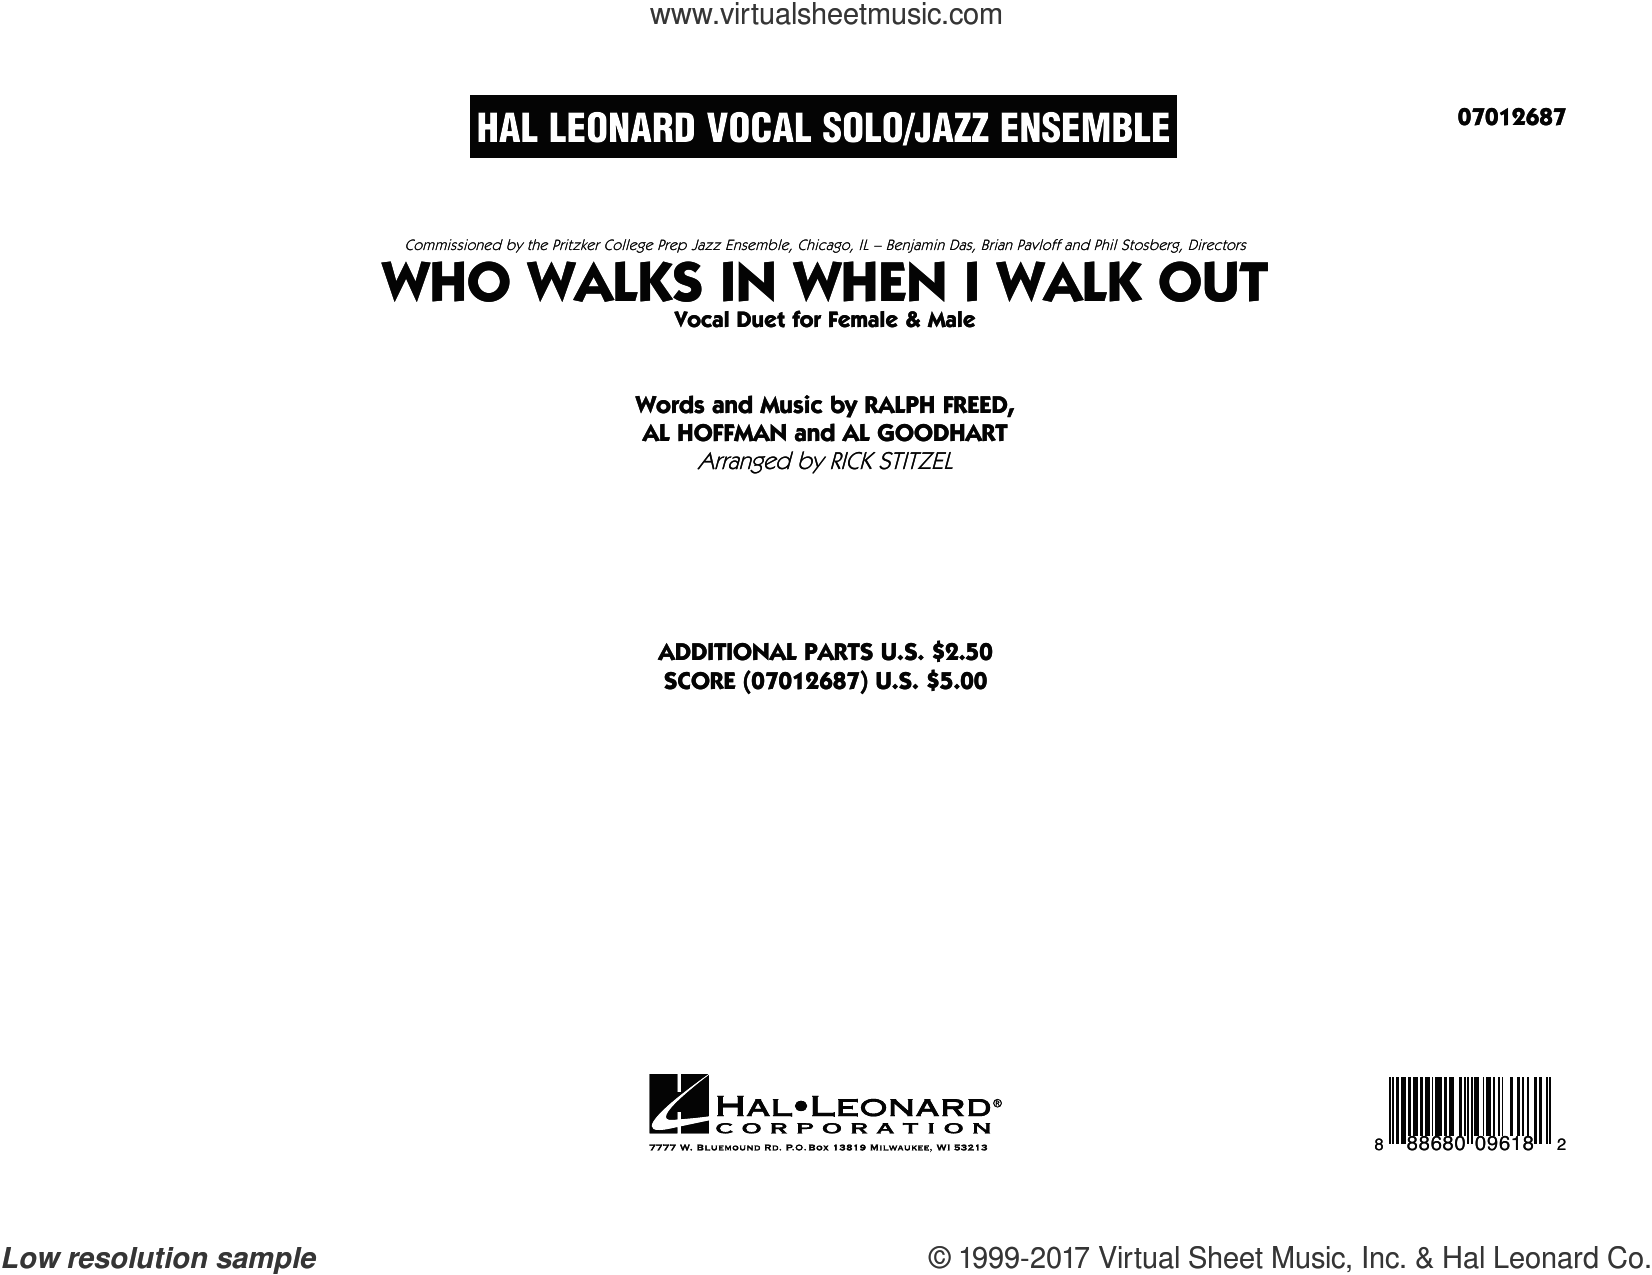 Who Walks In When I Walk Out? (Key: D Minor) (COMPLETE) sheet music for jazz band by Louis Armstrong, Al Goodhart, Al Hoffman, Ella Fitzgerald, Ralph Freed and Rick Stitzel, intermediate duet. Score Image Preview.